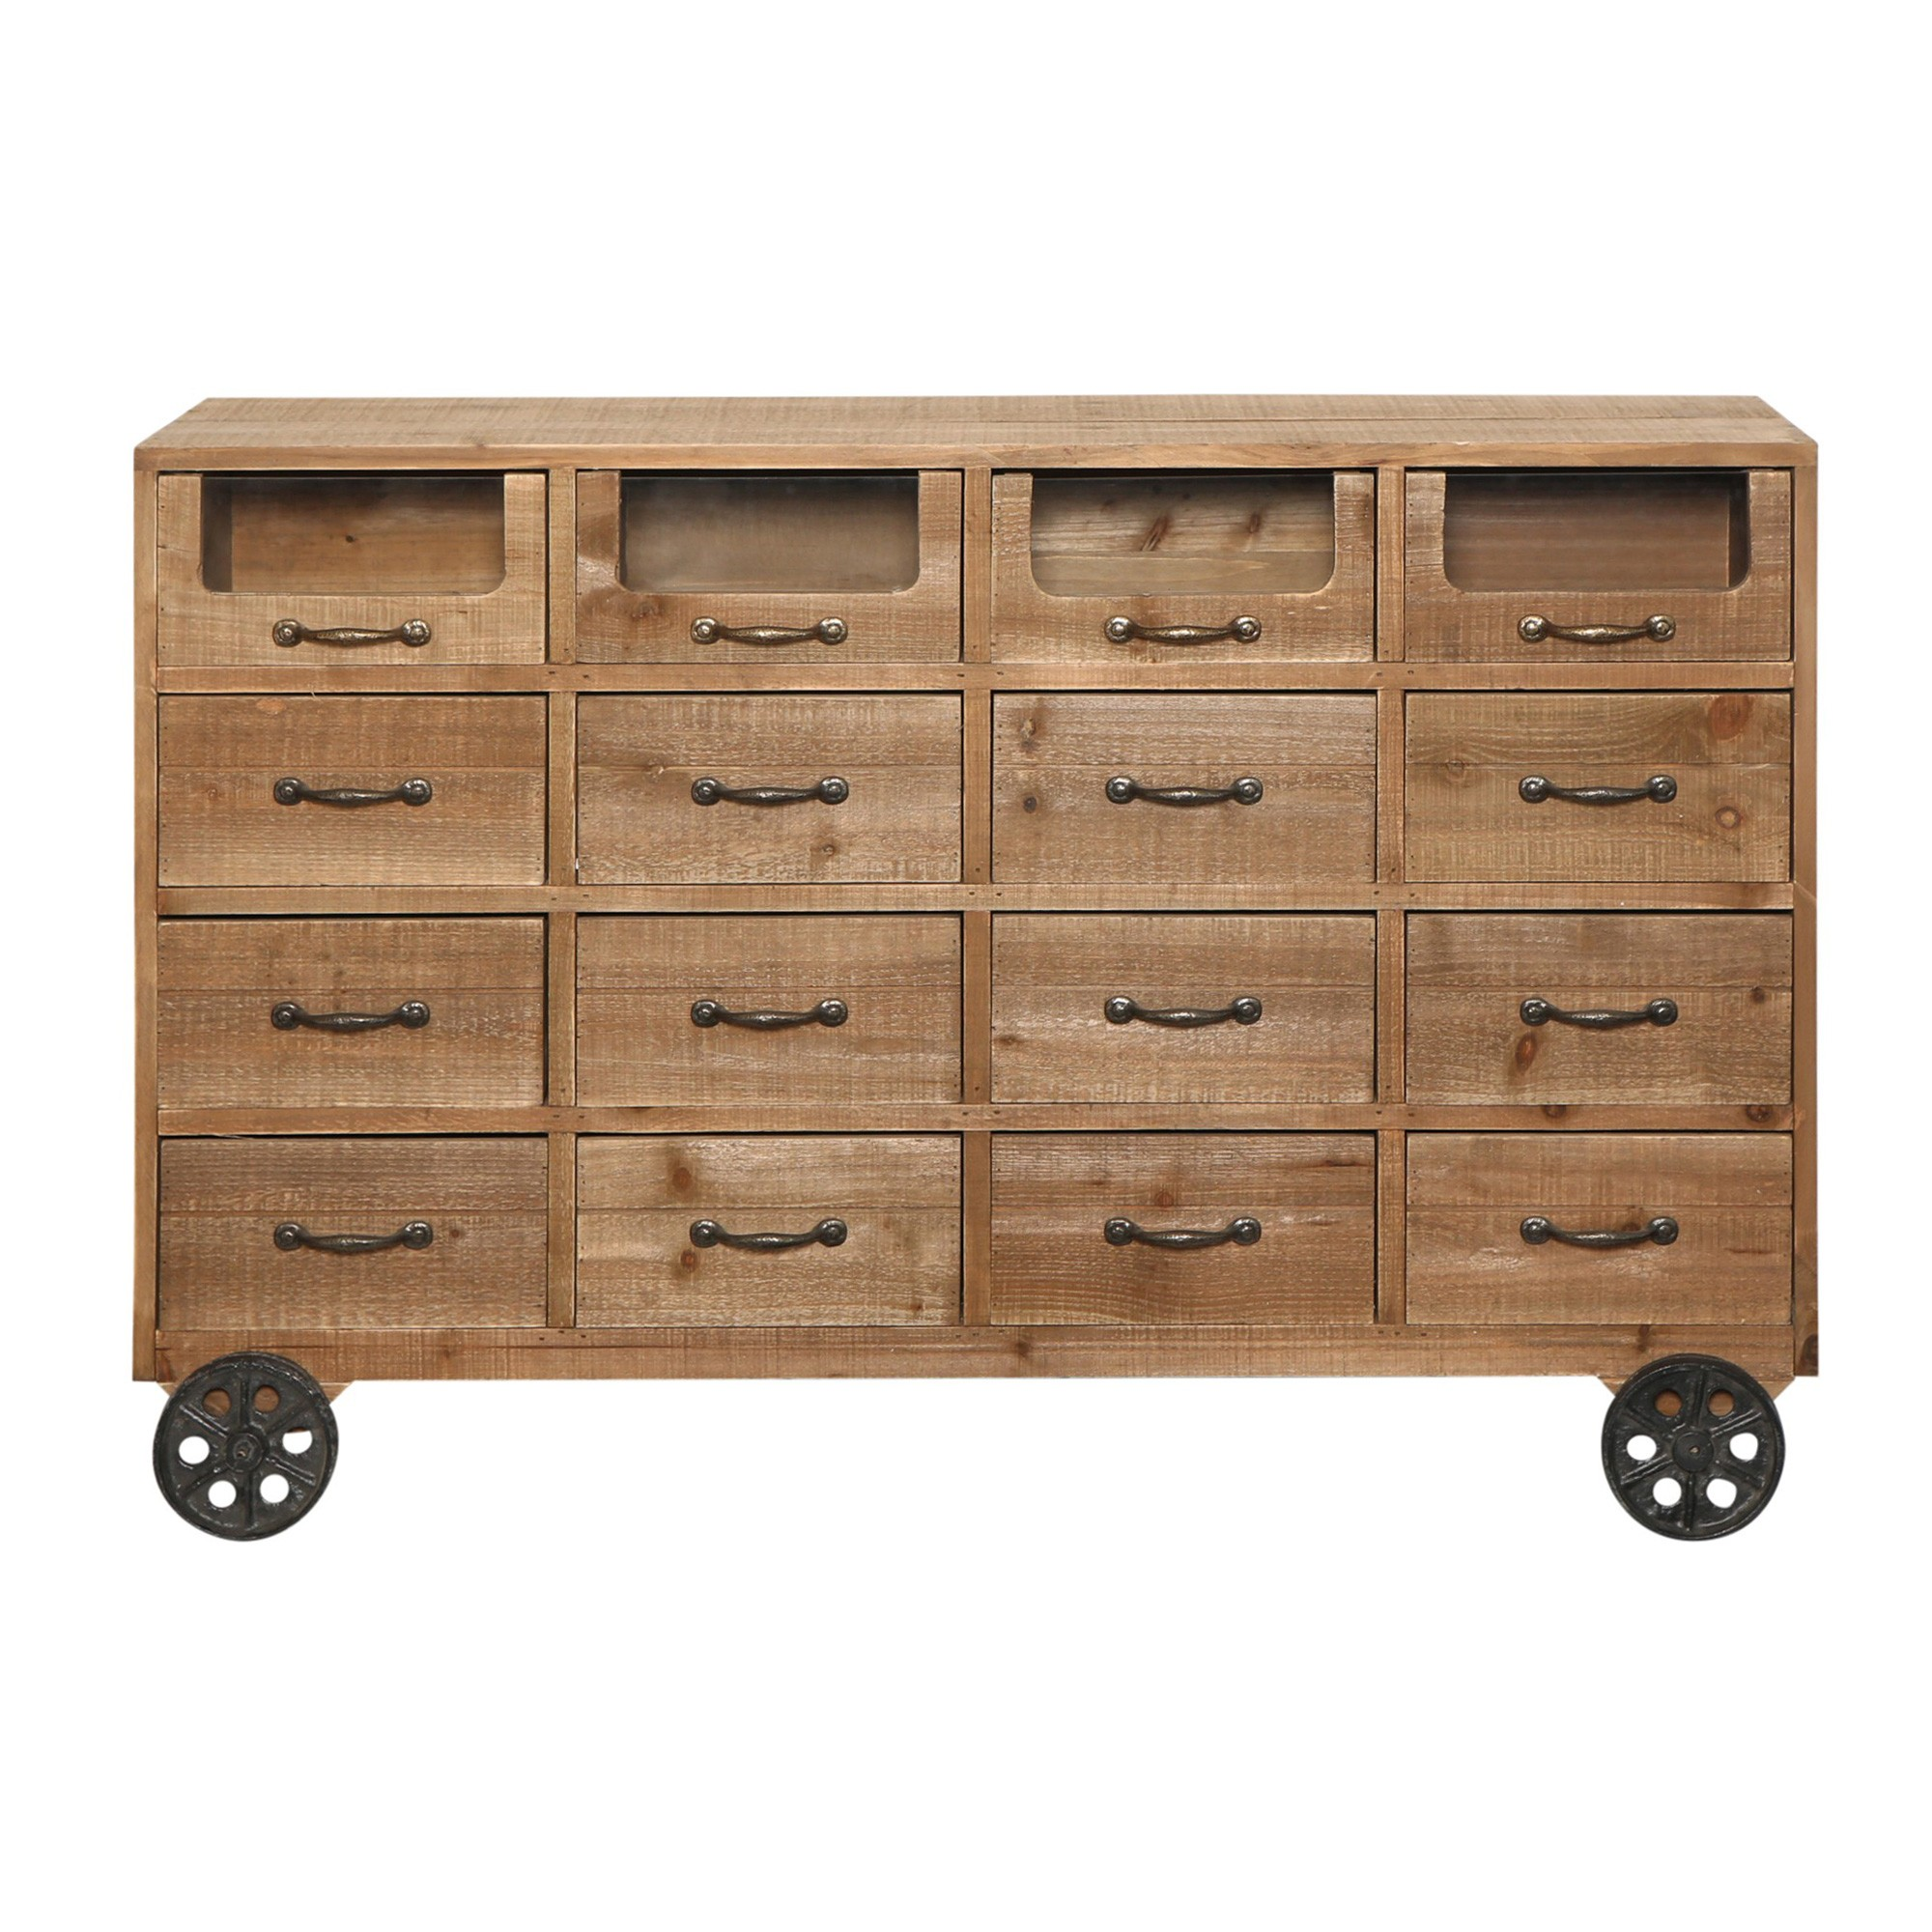 Hermione Fir Timber 16 Drawer Chest